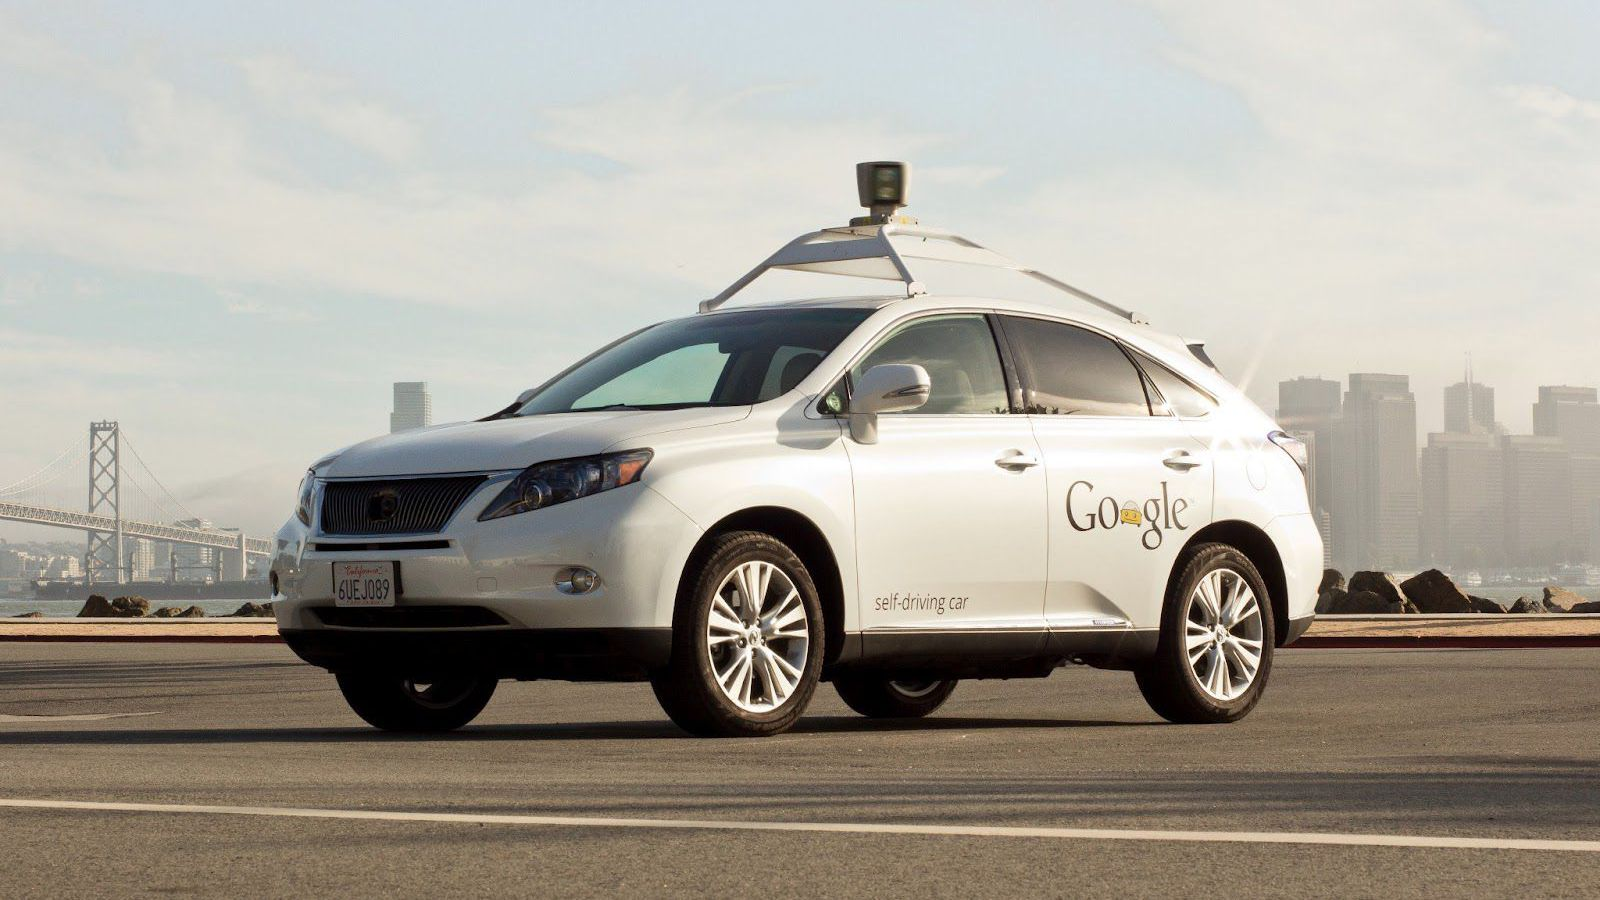 Googles prototype self-driving car (Source : google.com)